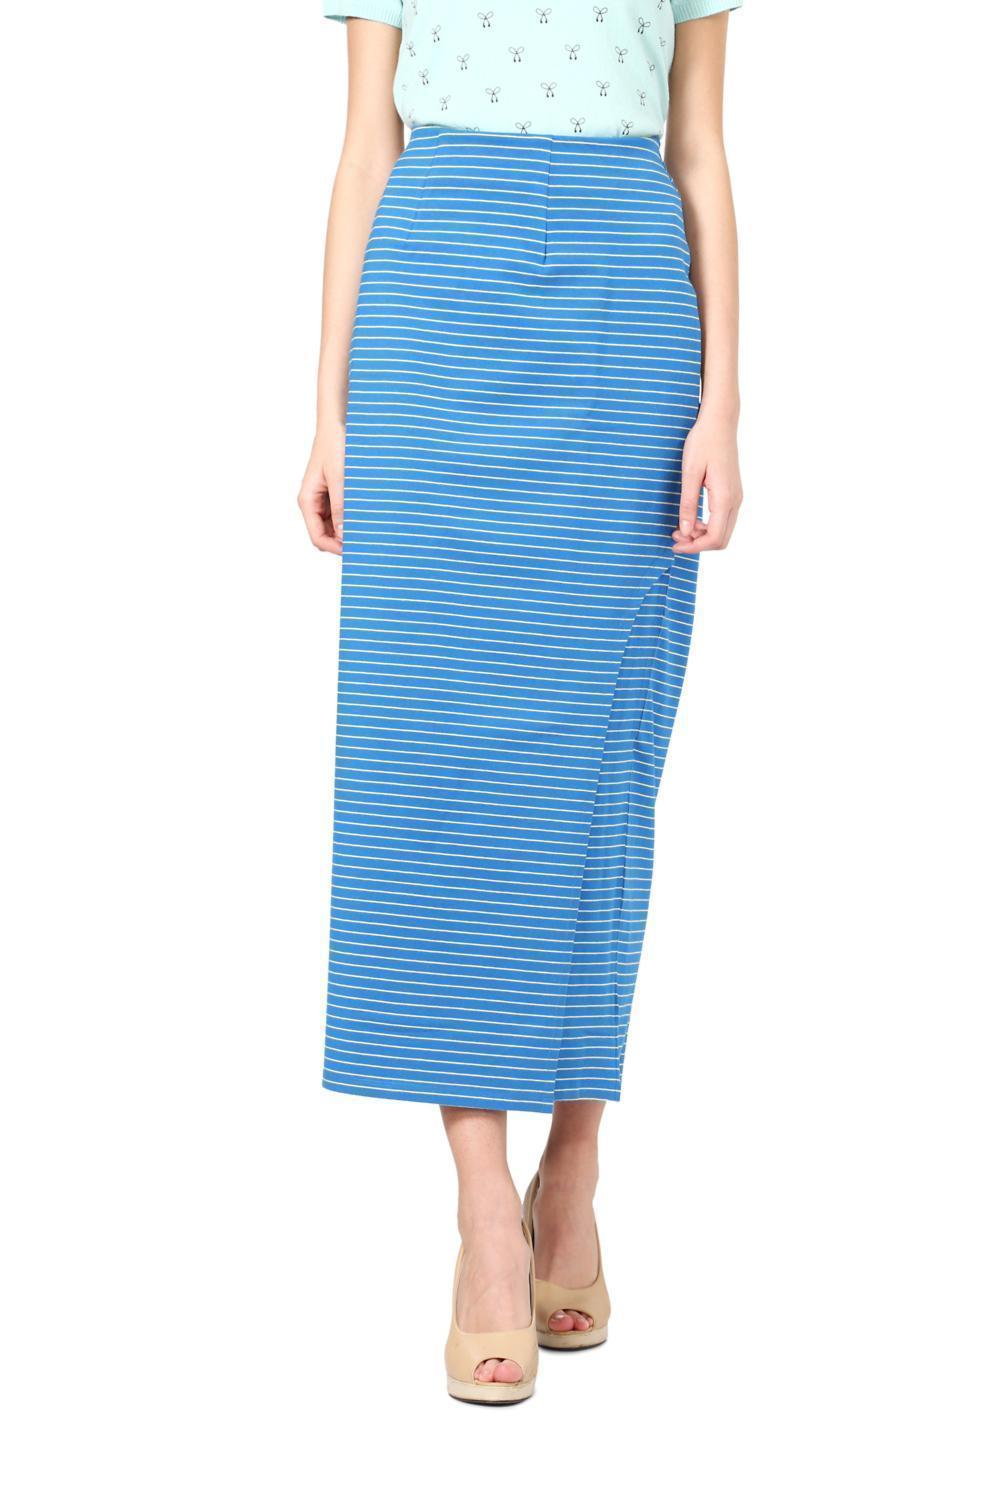 daa622d71 Solly Skirts, Allen Solly Blue Skirt for Women at Allensolly.com